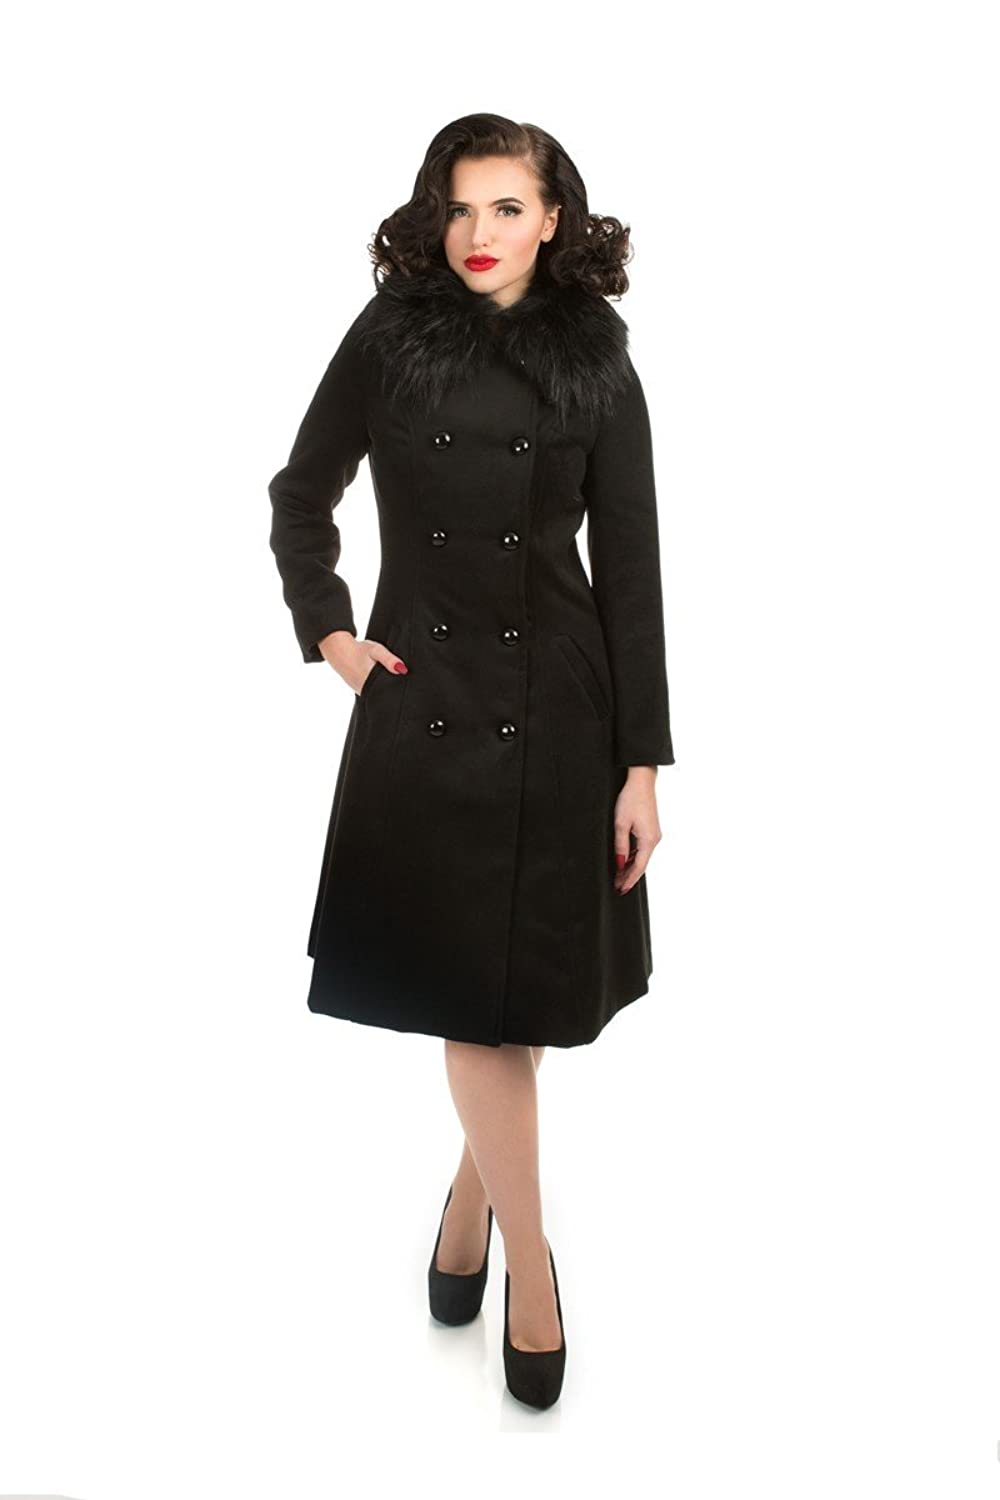 1950s Jackets, Coats, Bolero | Swing, Pin Up, Rockabilly Hearts & Roses Chrissette Coat in Black (Shipped from The US US Sizes) $64.88 AT vintagedancer.com